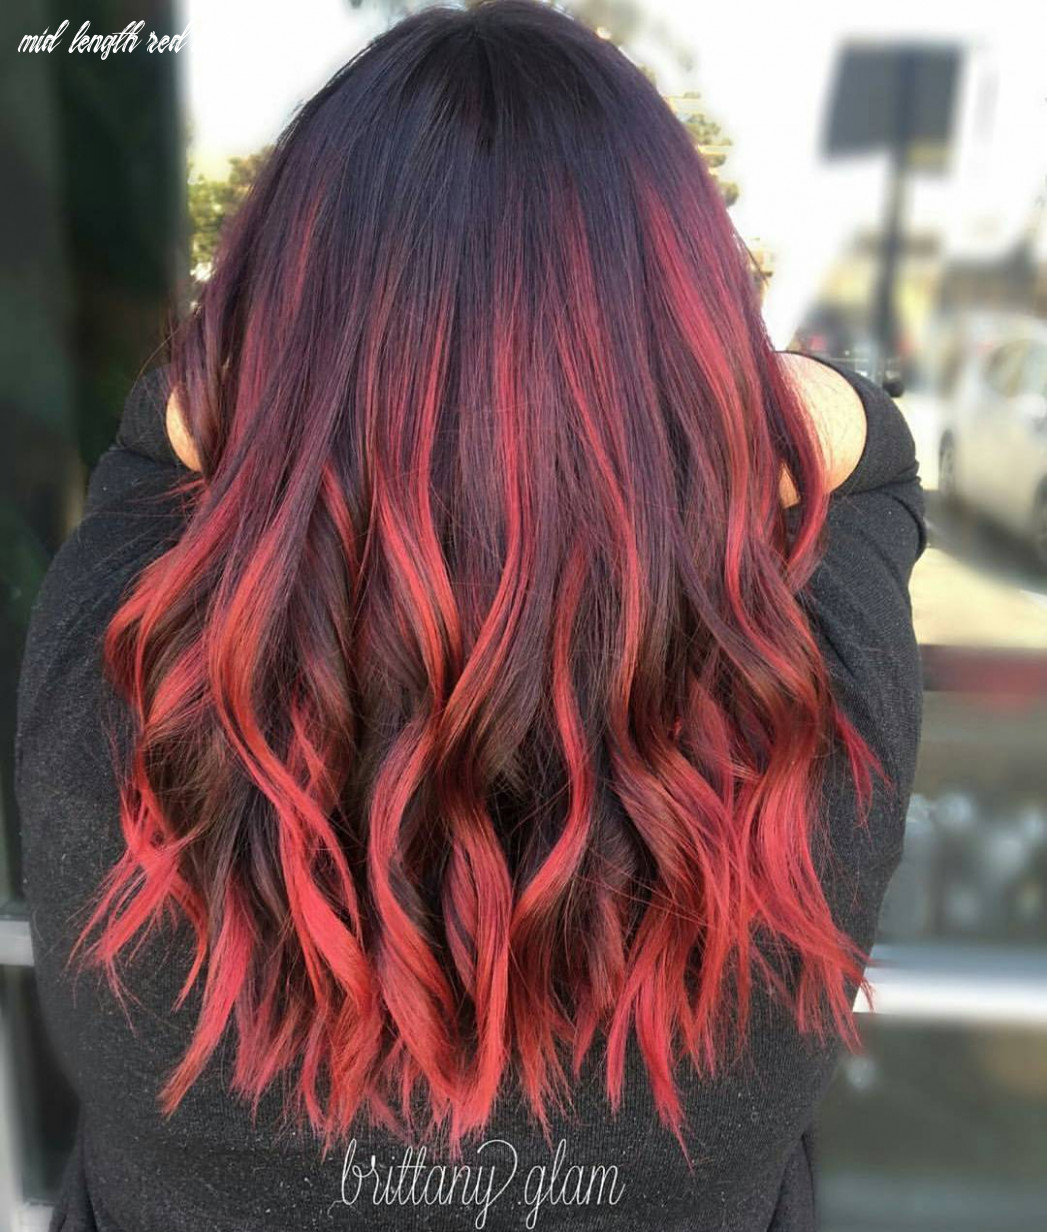 10 medium long hairstyles for thick hair in super beautiful colors